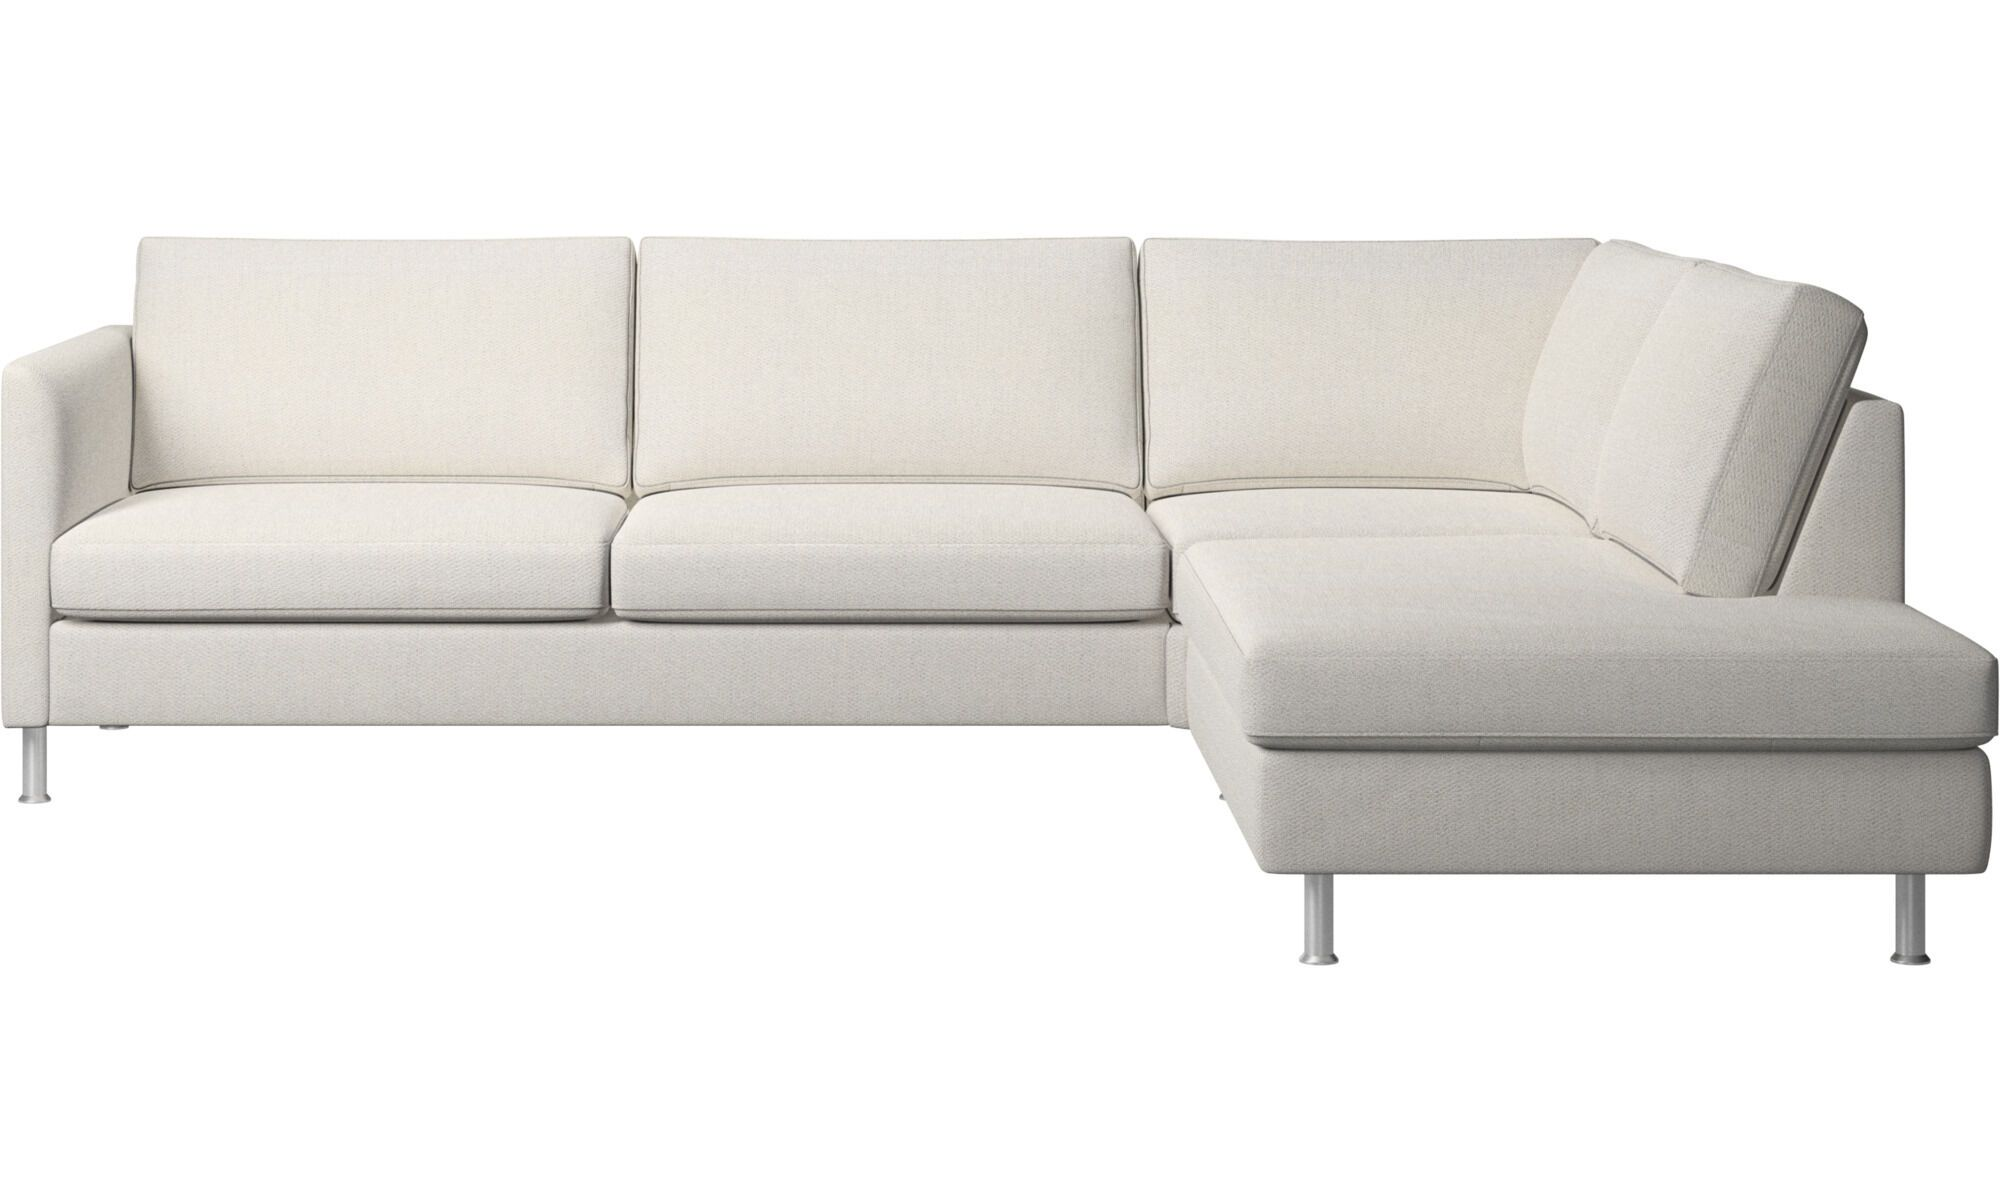 Lounge Sofas Indivi Ecksofa Mit Loungemodul Weiß Stoff Canapé Angle Canape Angle Gris Canapé